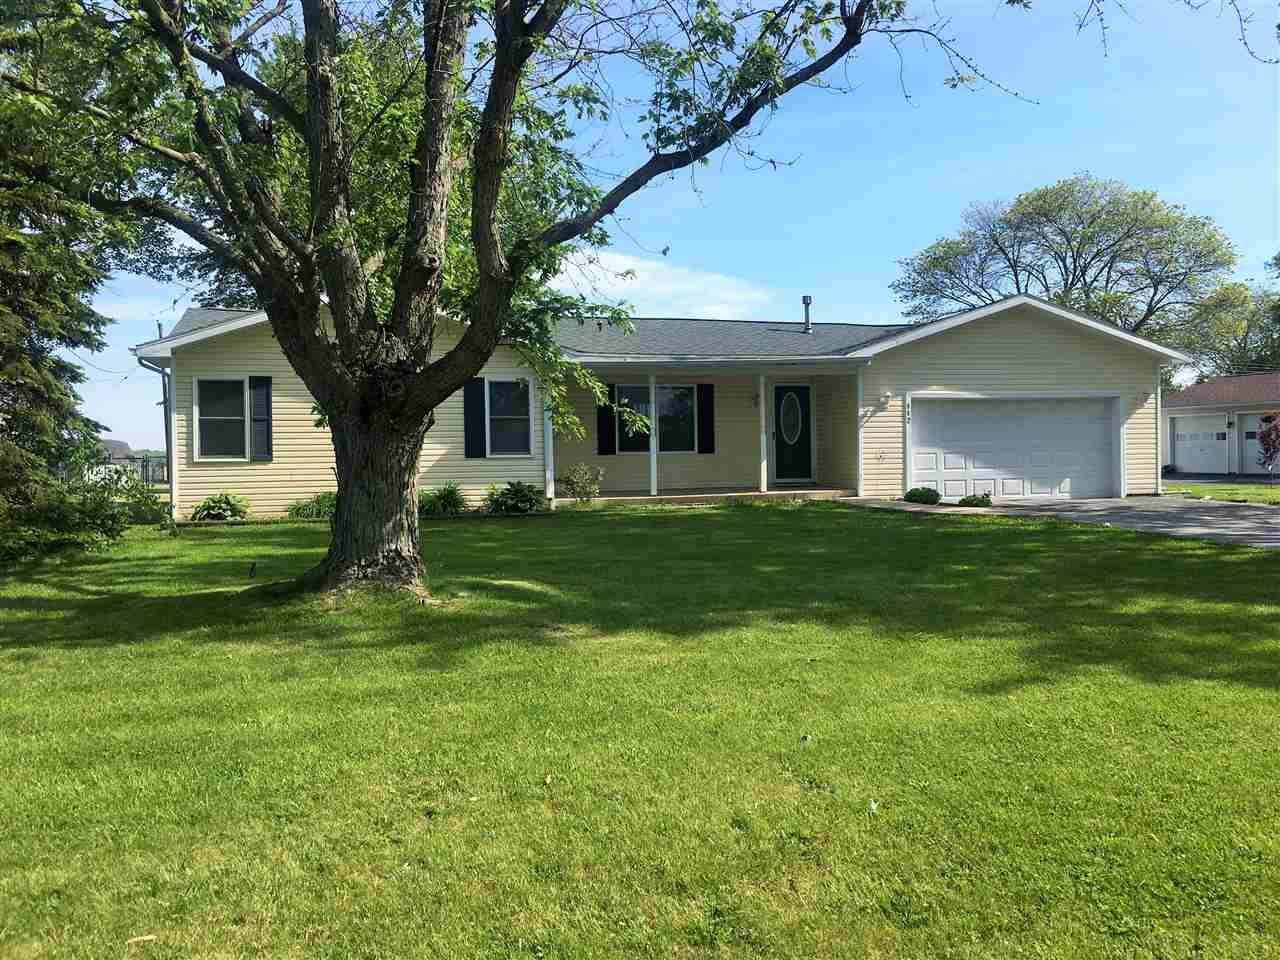 112 PETERSON, Sweetser, IN 46987